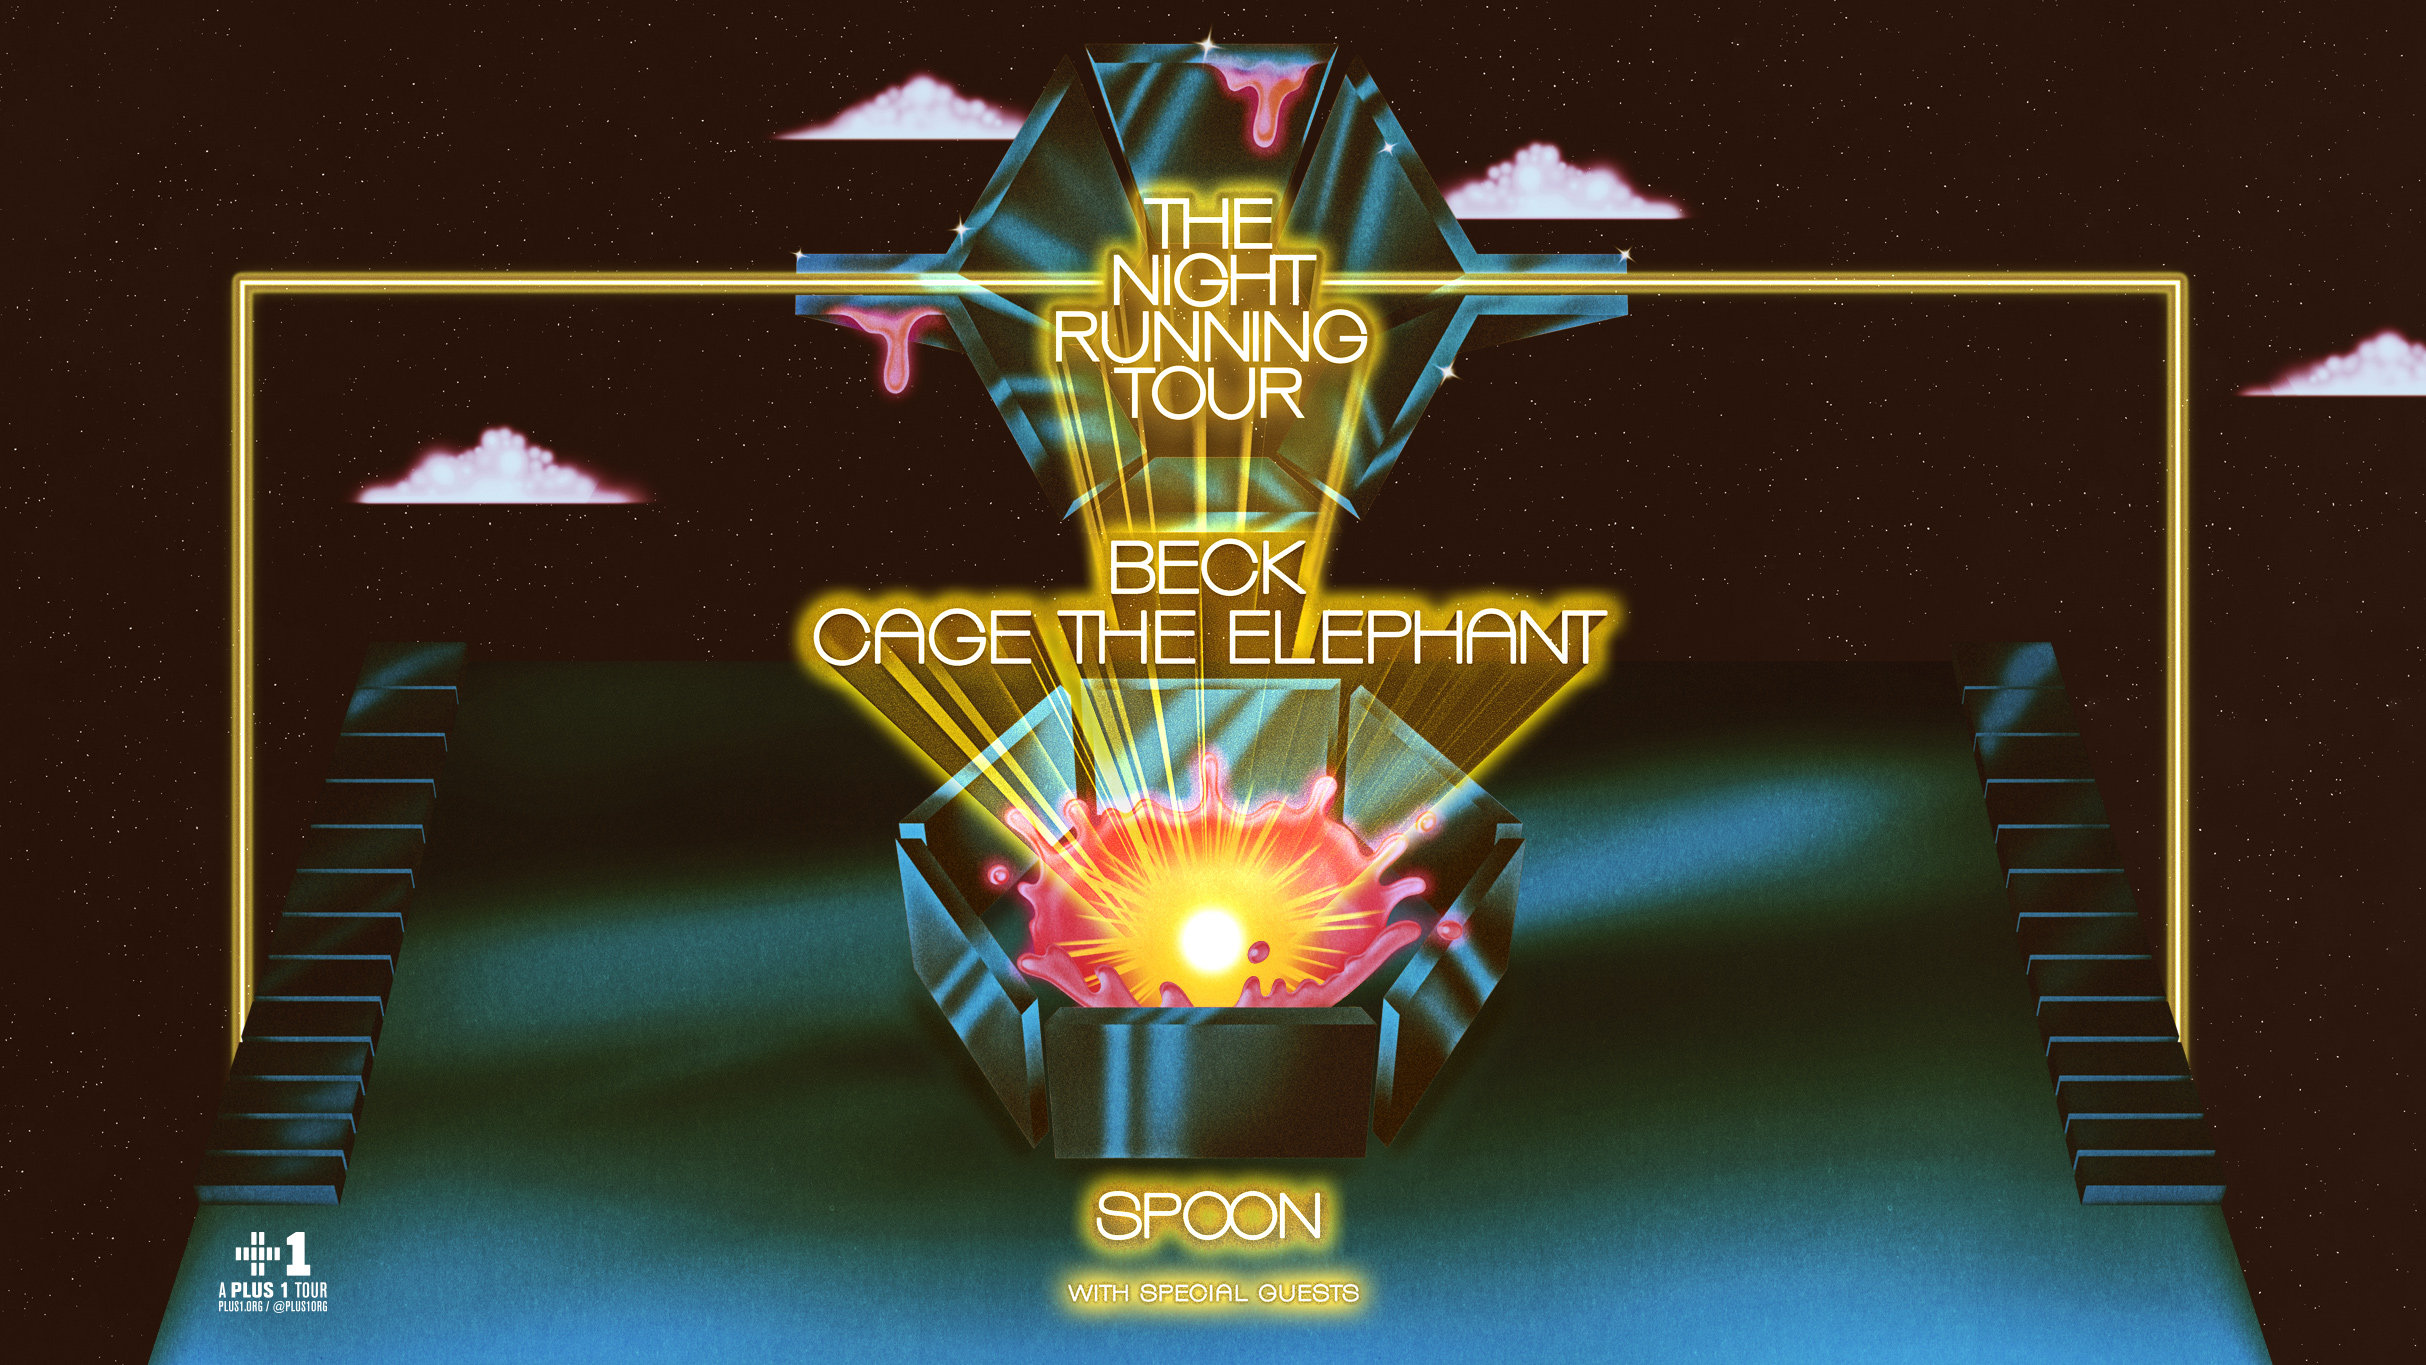 Beck, Cage the Elephant and Spoon tour